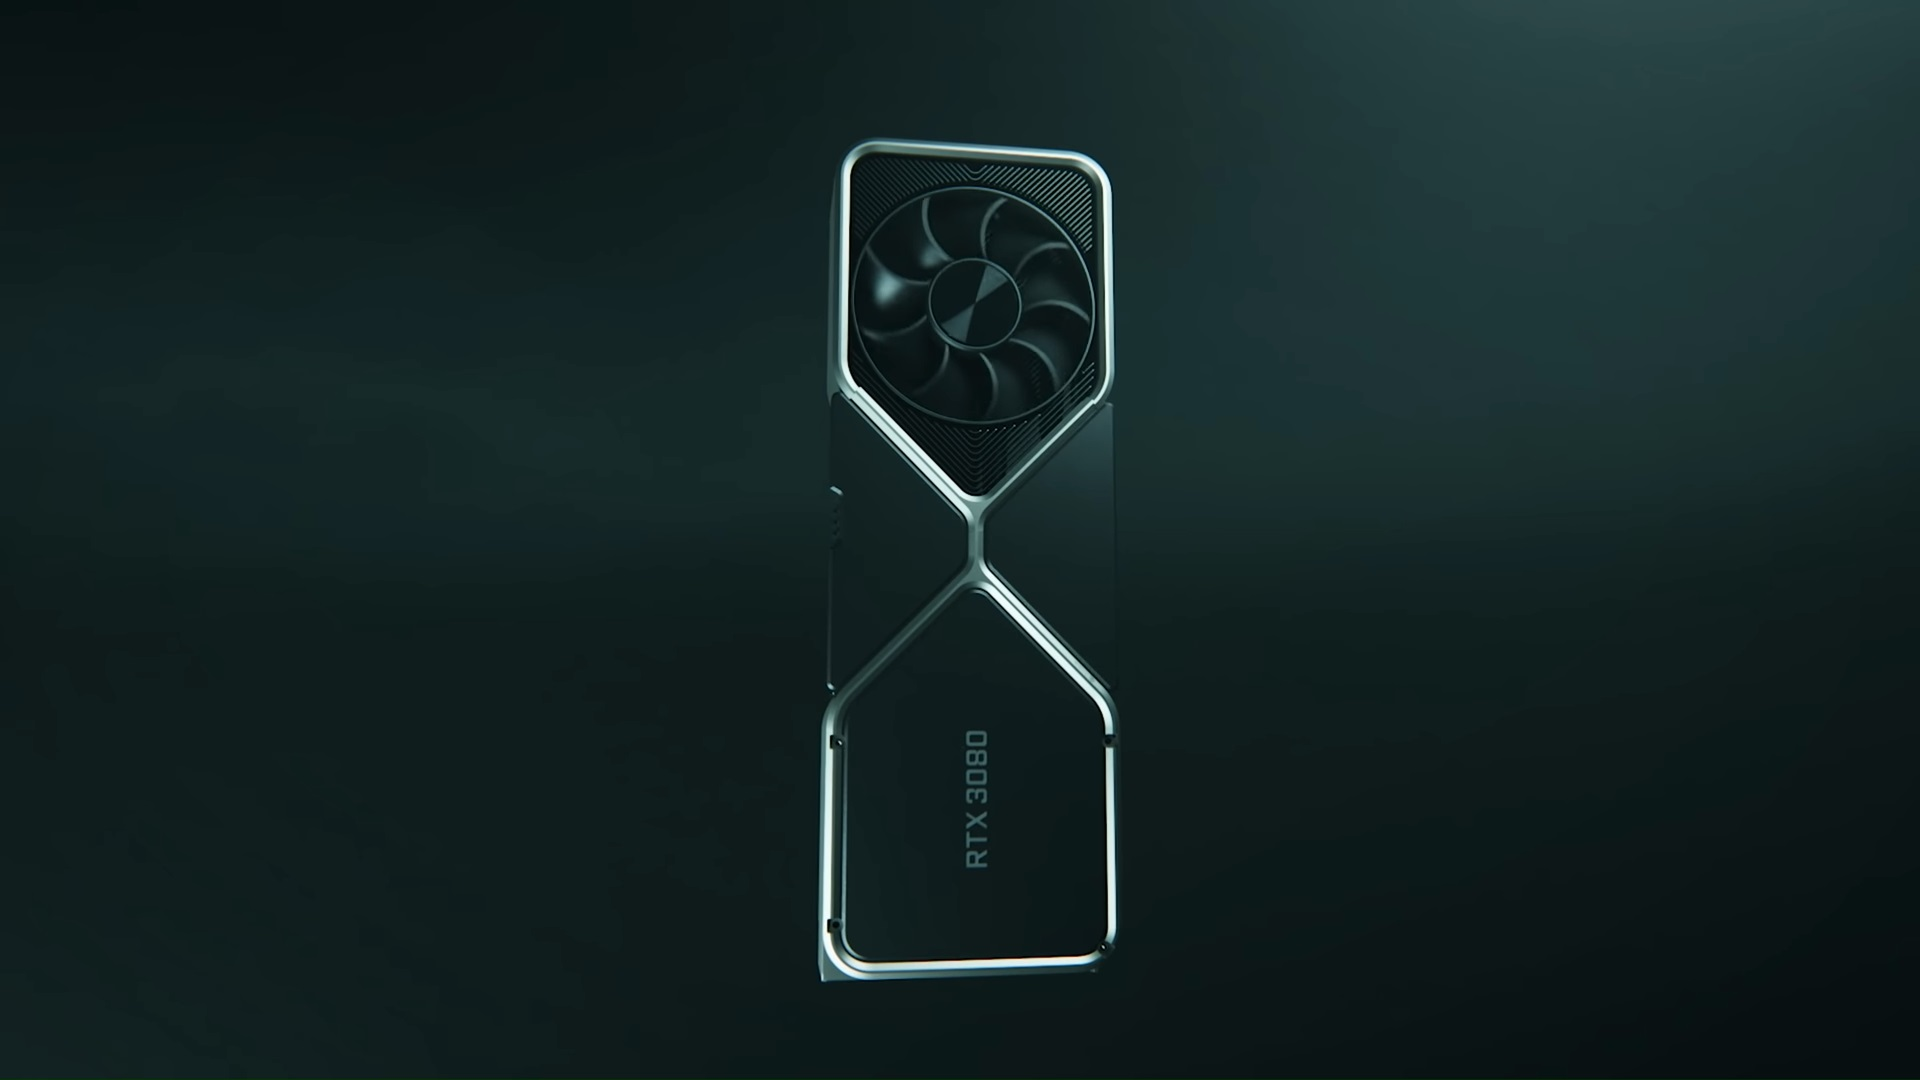 Nvidia throws down the gauntlet again with the 30 series cards and more